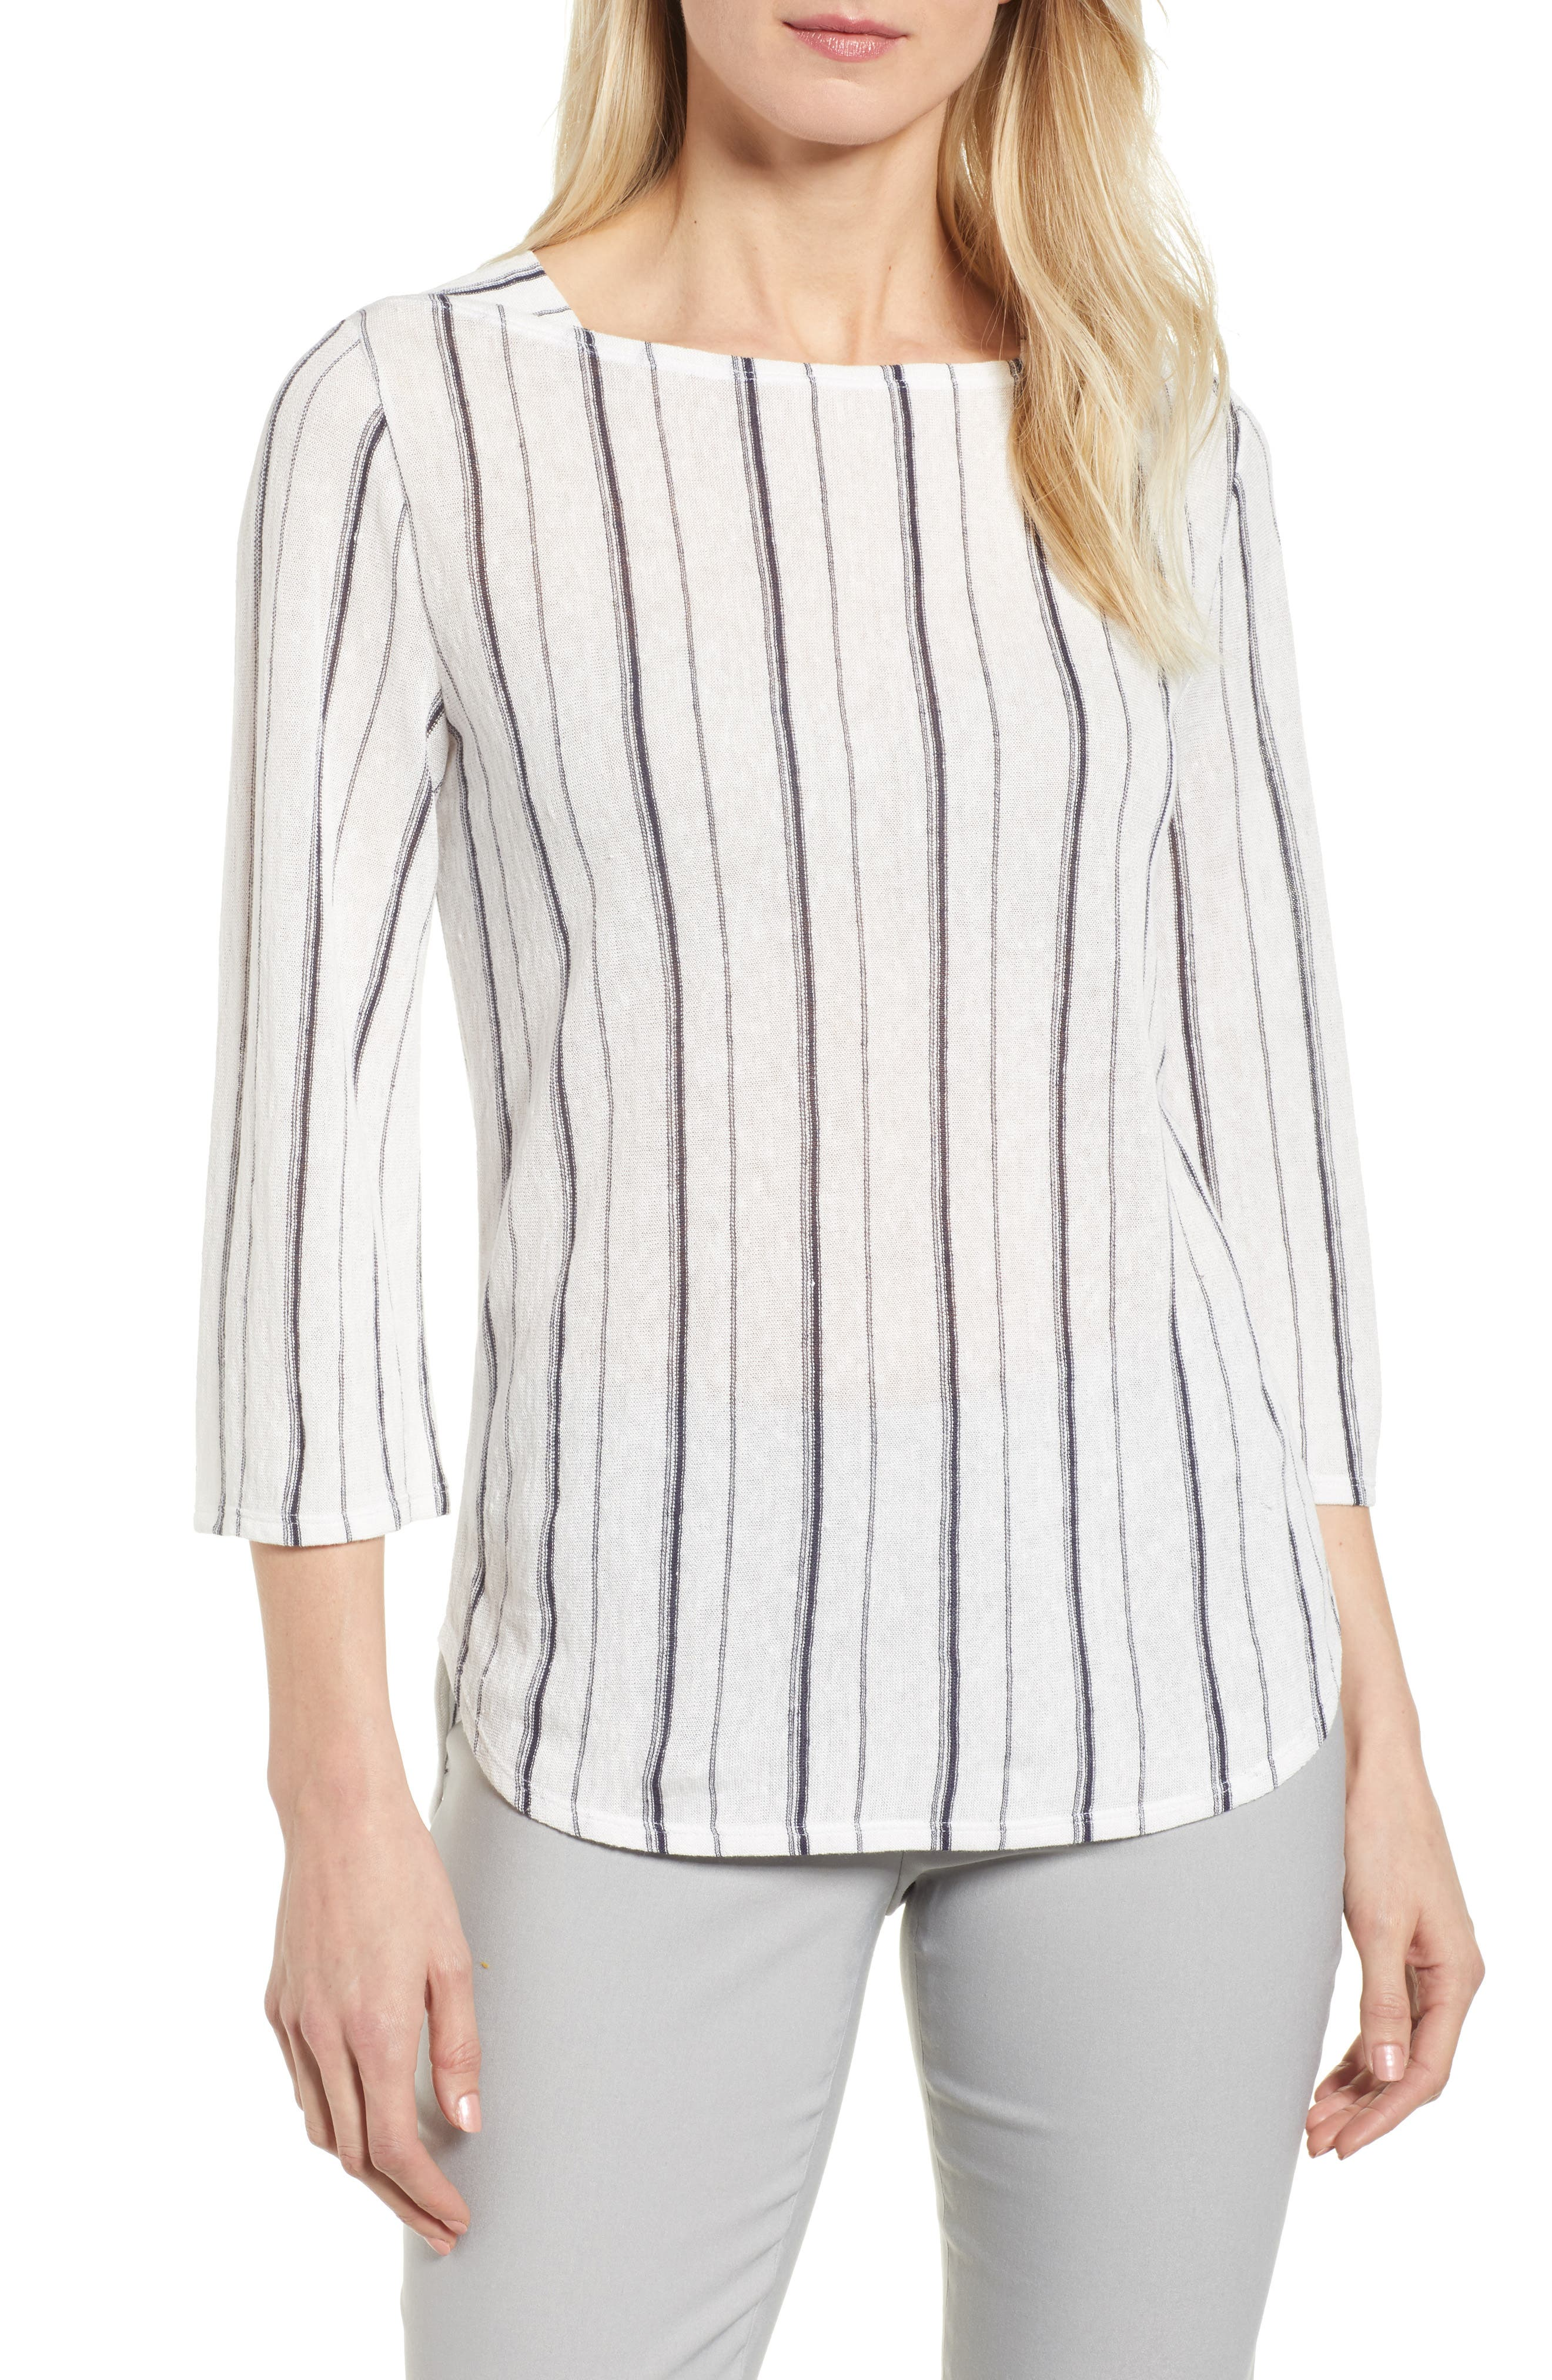 In Motion Stripe Top,                         Main,                         color, 190